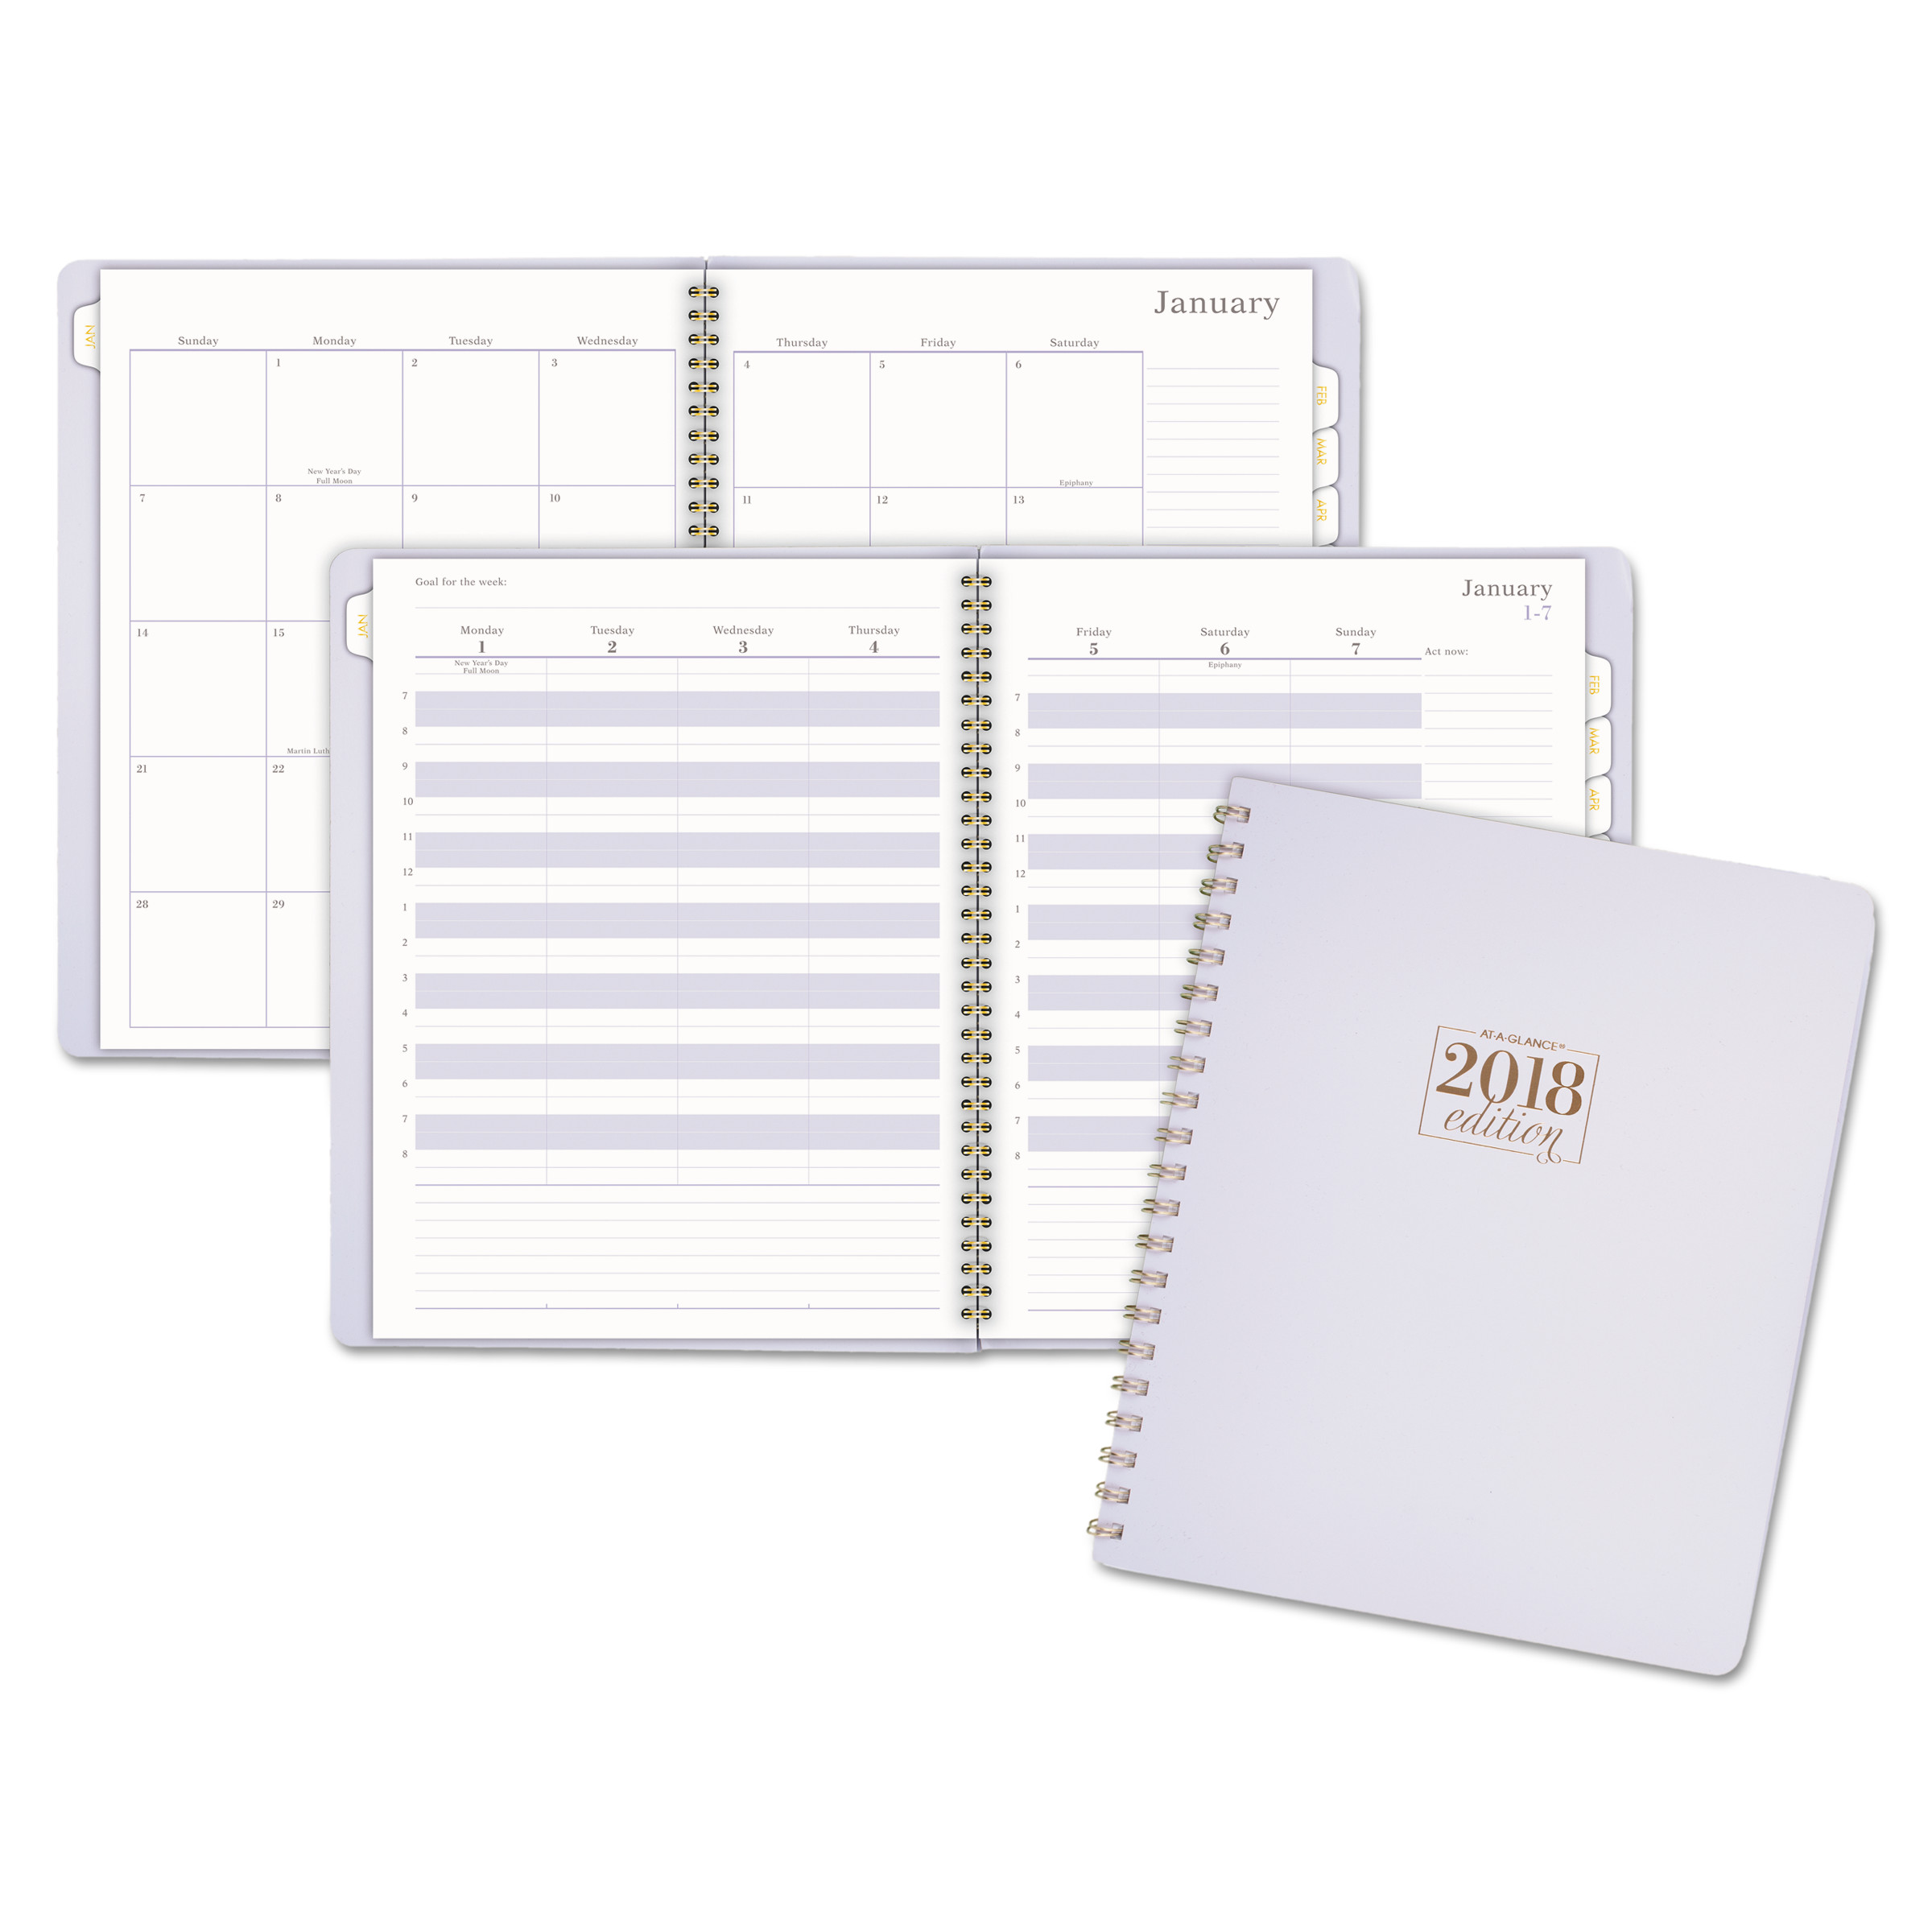 2018 weekly appointment book